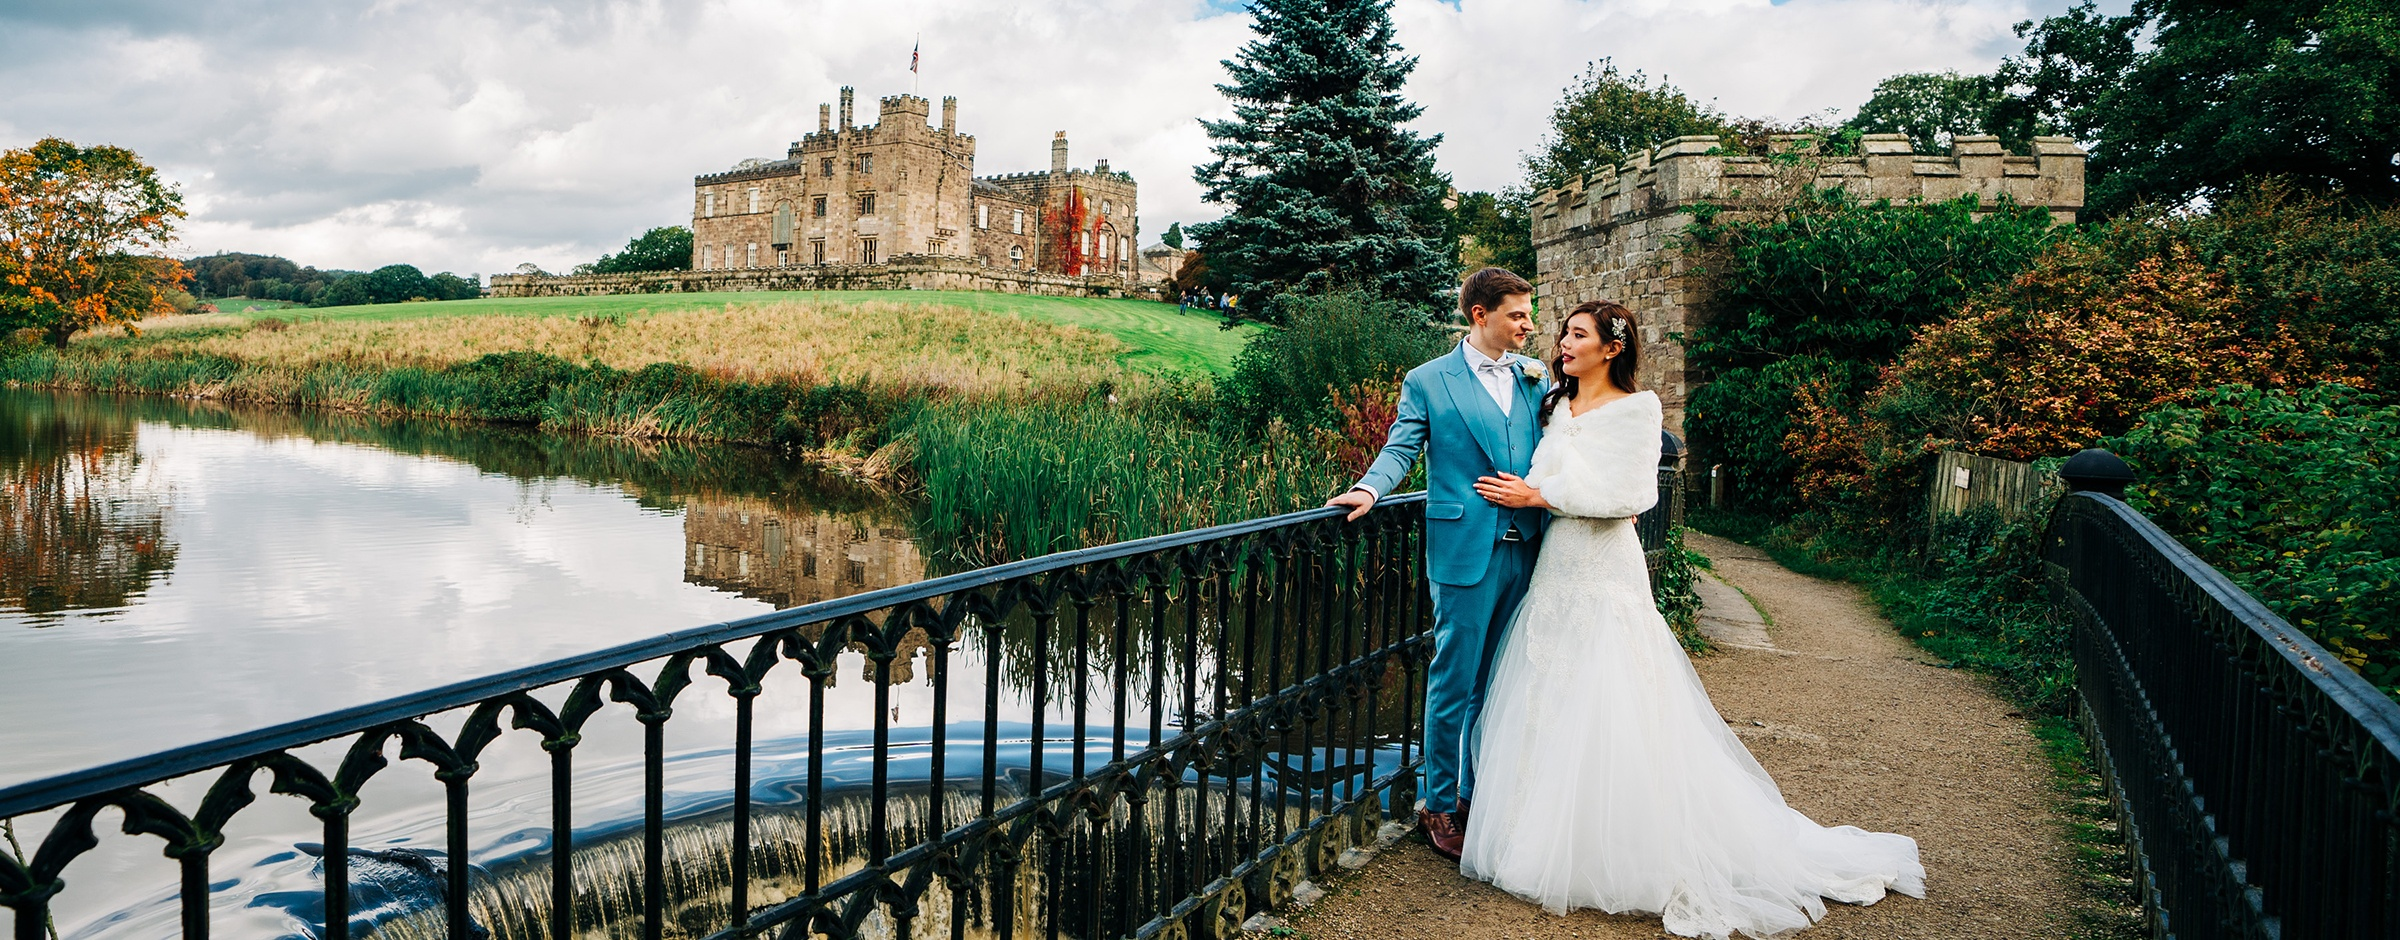 Ripley Castle Wedding Photography 4